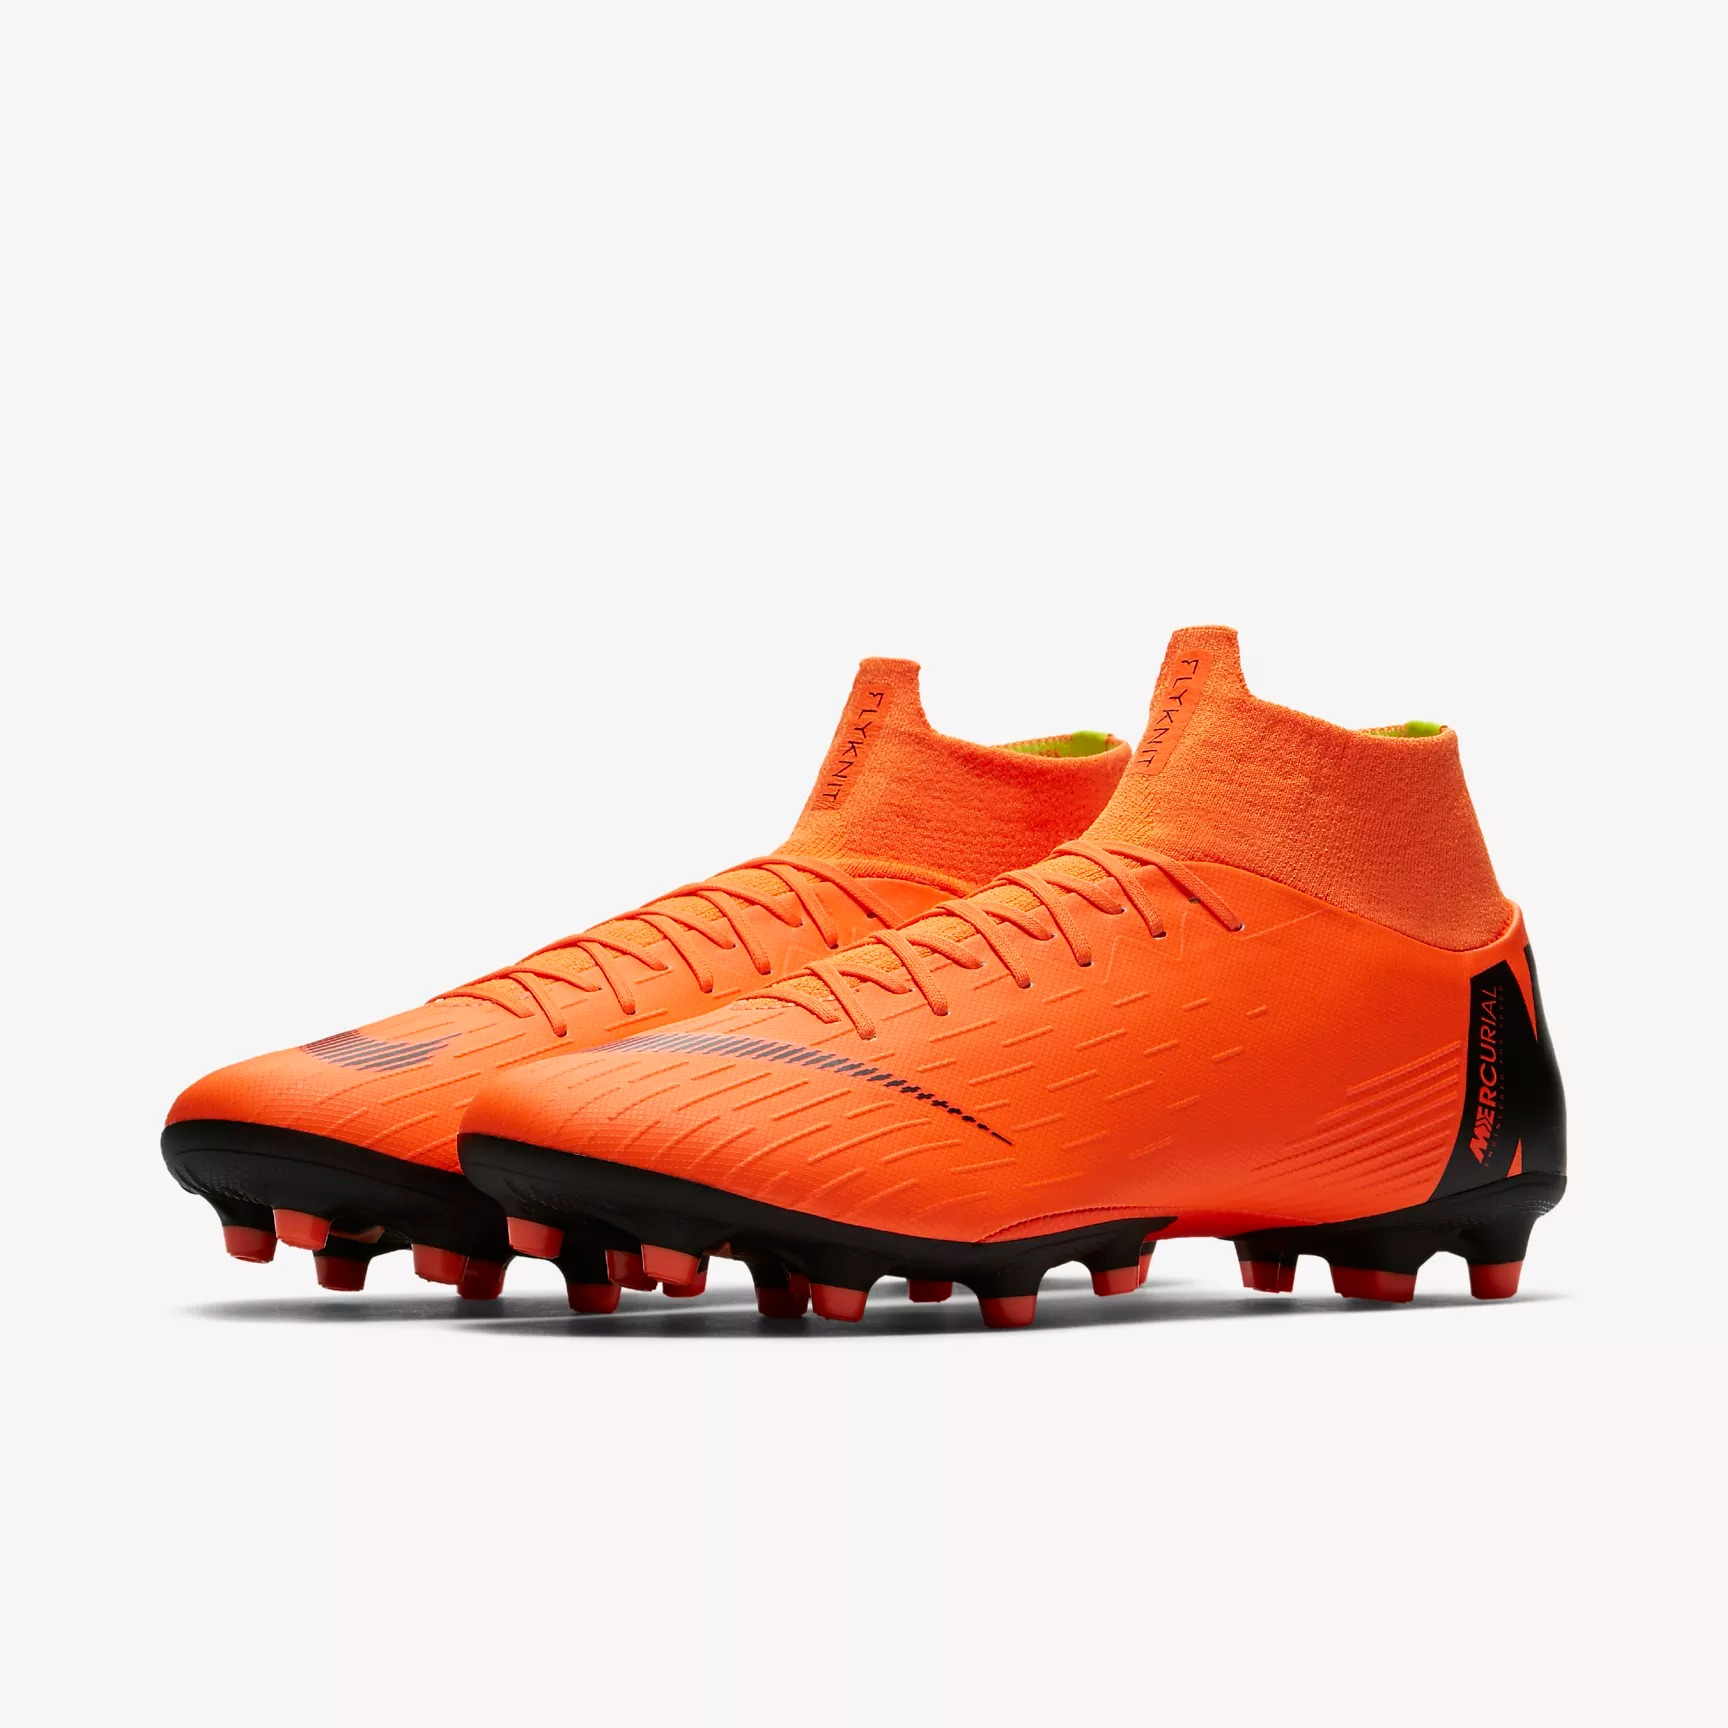 7c02aa23210 Nike Mercurial Superfly 6 Pro AG-PRO Soccer Cleats - Soccer Cleats Nike  Football Boots - Superfanas.lt